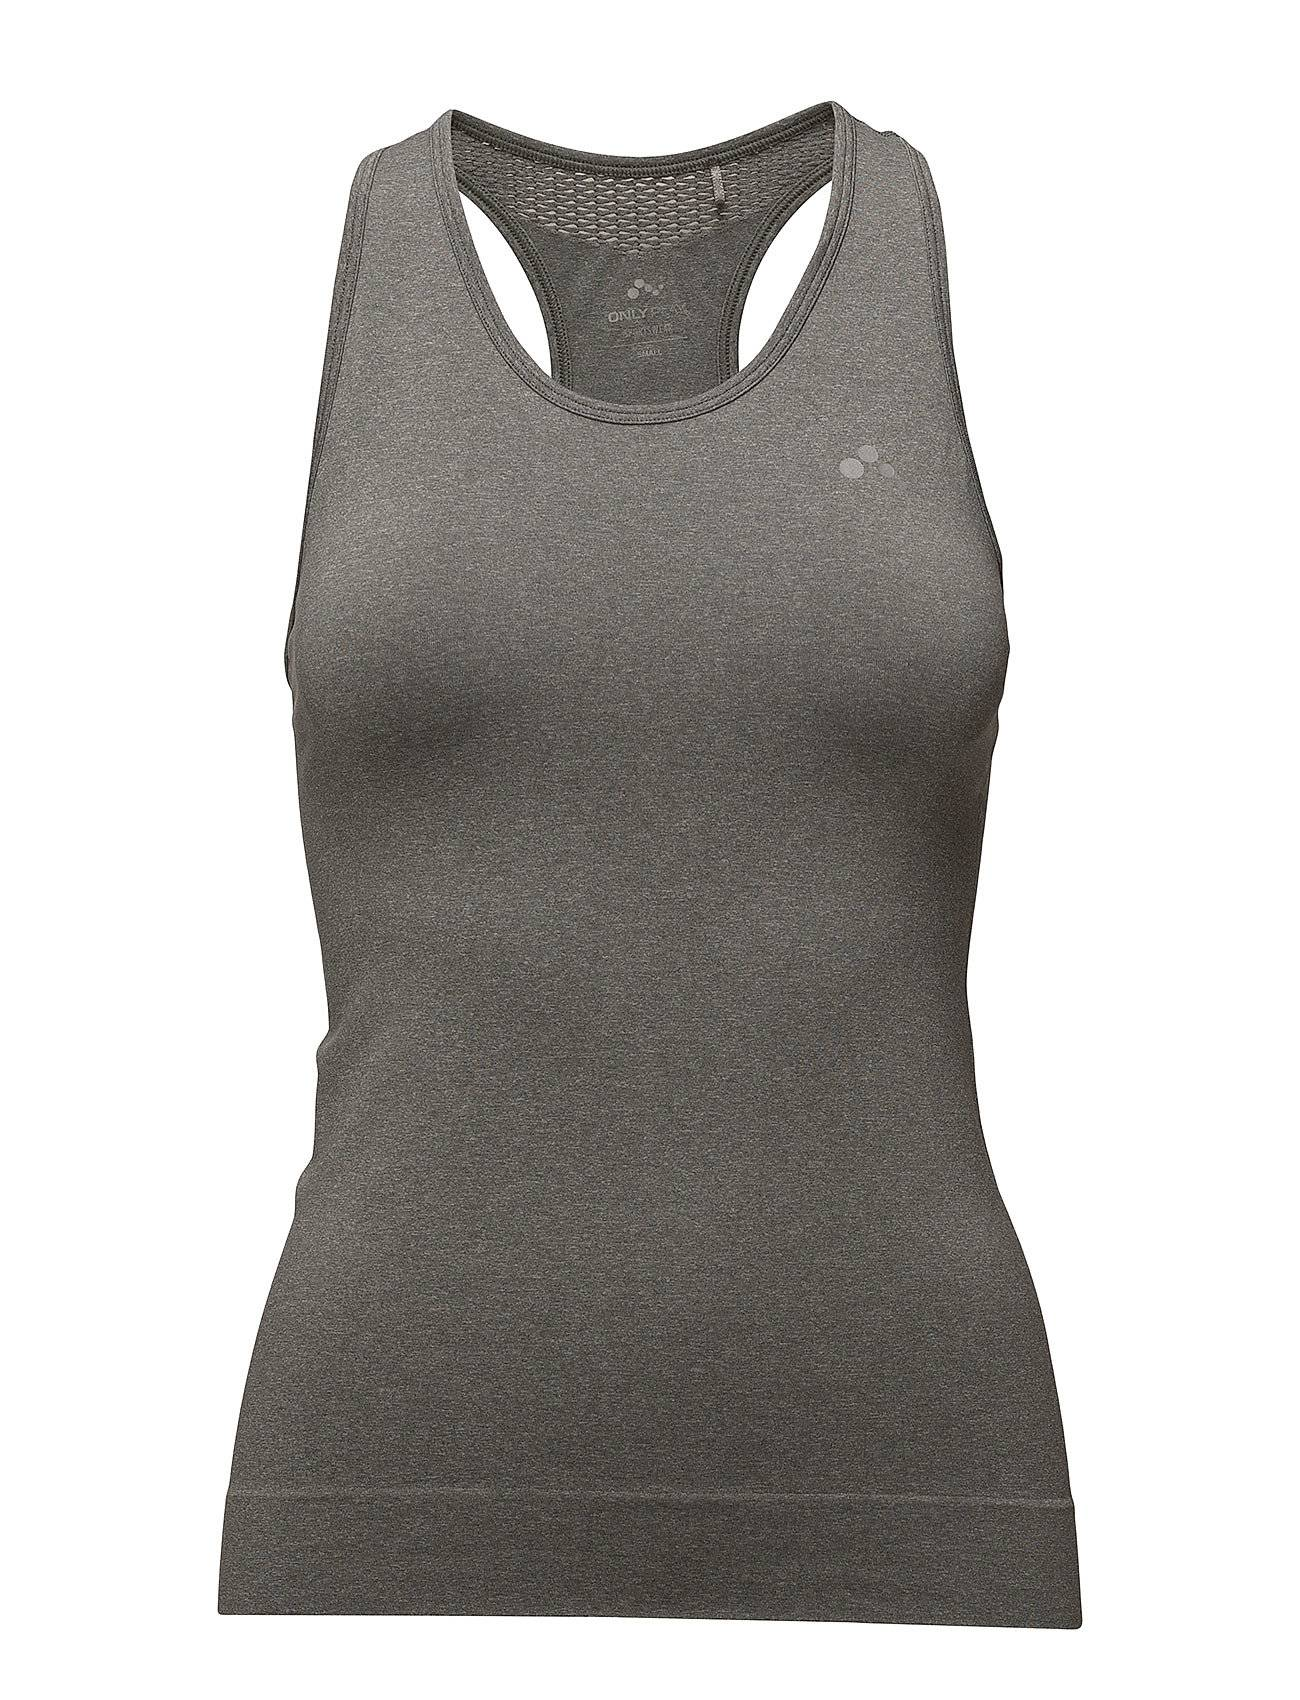 Image of ONLY PLAY Onpchristina Seamless Sl Top - Opus T-shirts & Tops Sleeveless Harmaa ONLY PLAY